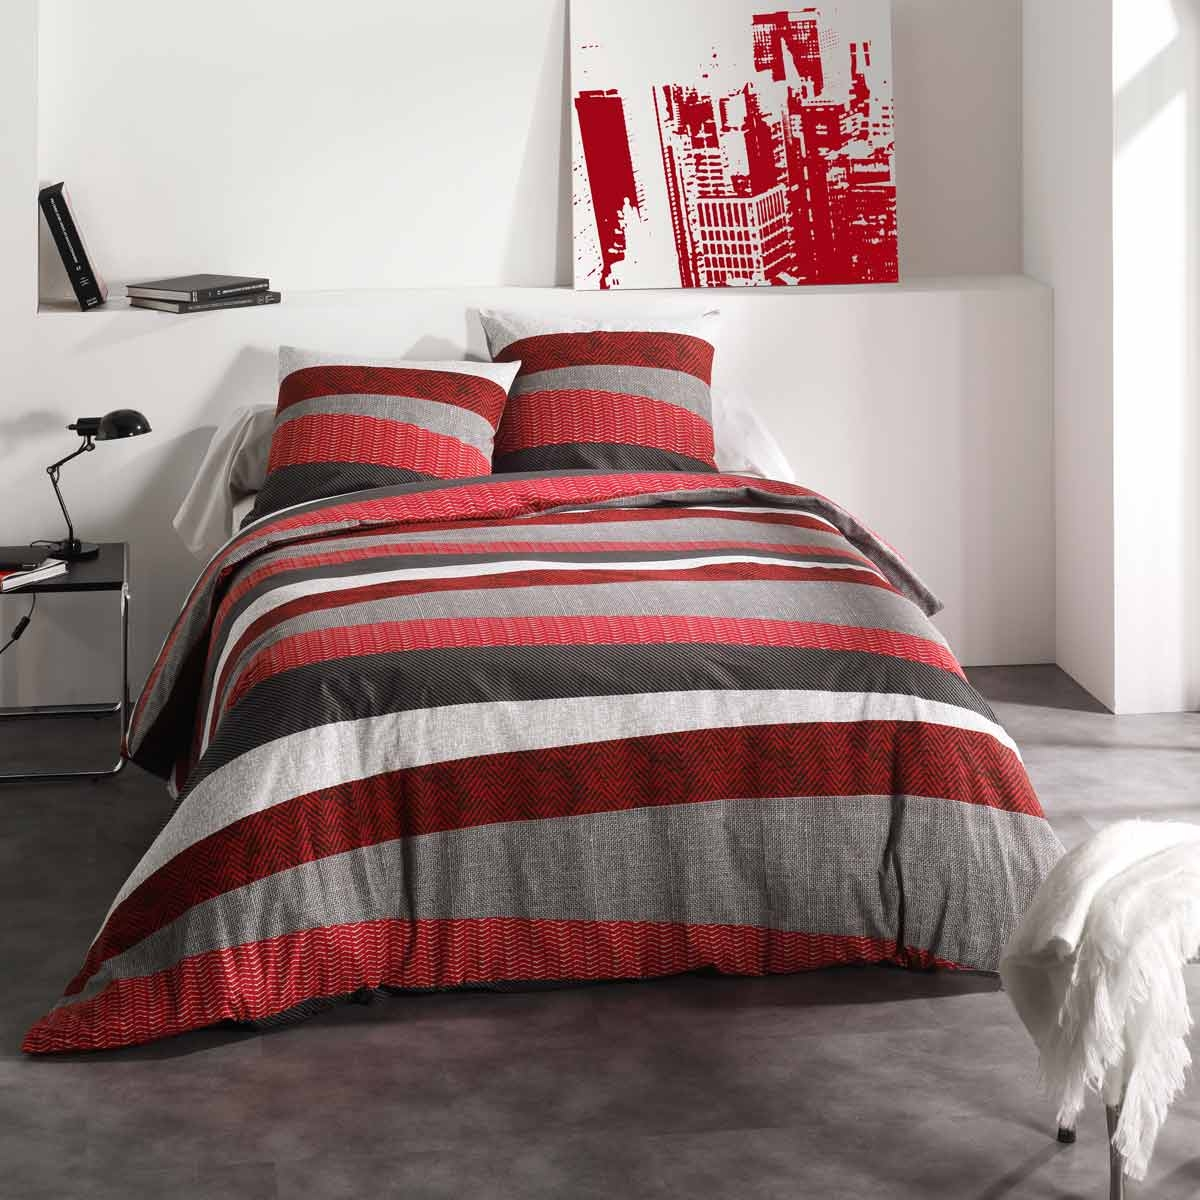 housse de couette taie tribeca rouge c design home ebay. Black Bedroom Furniture Sets. Home Design Ideas